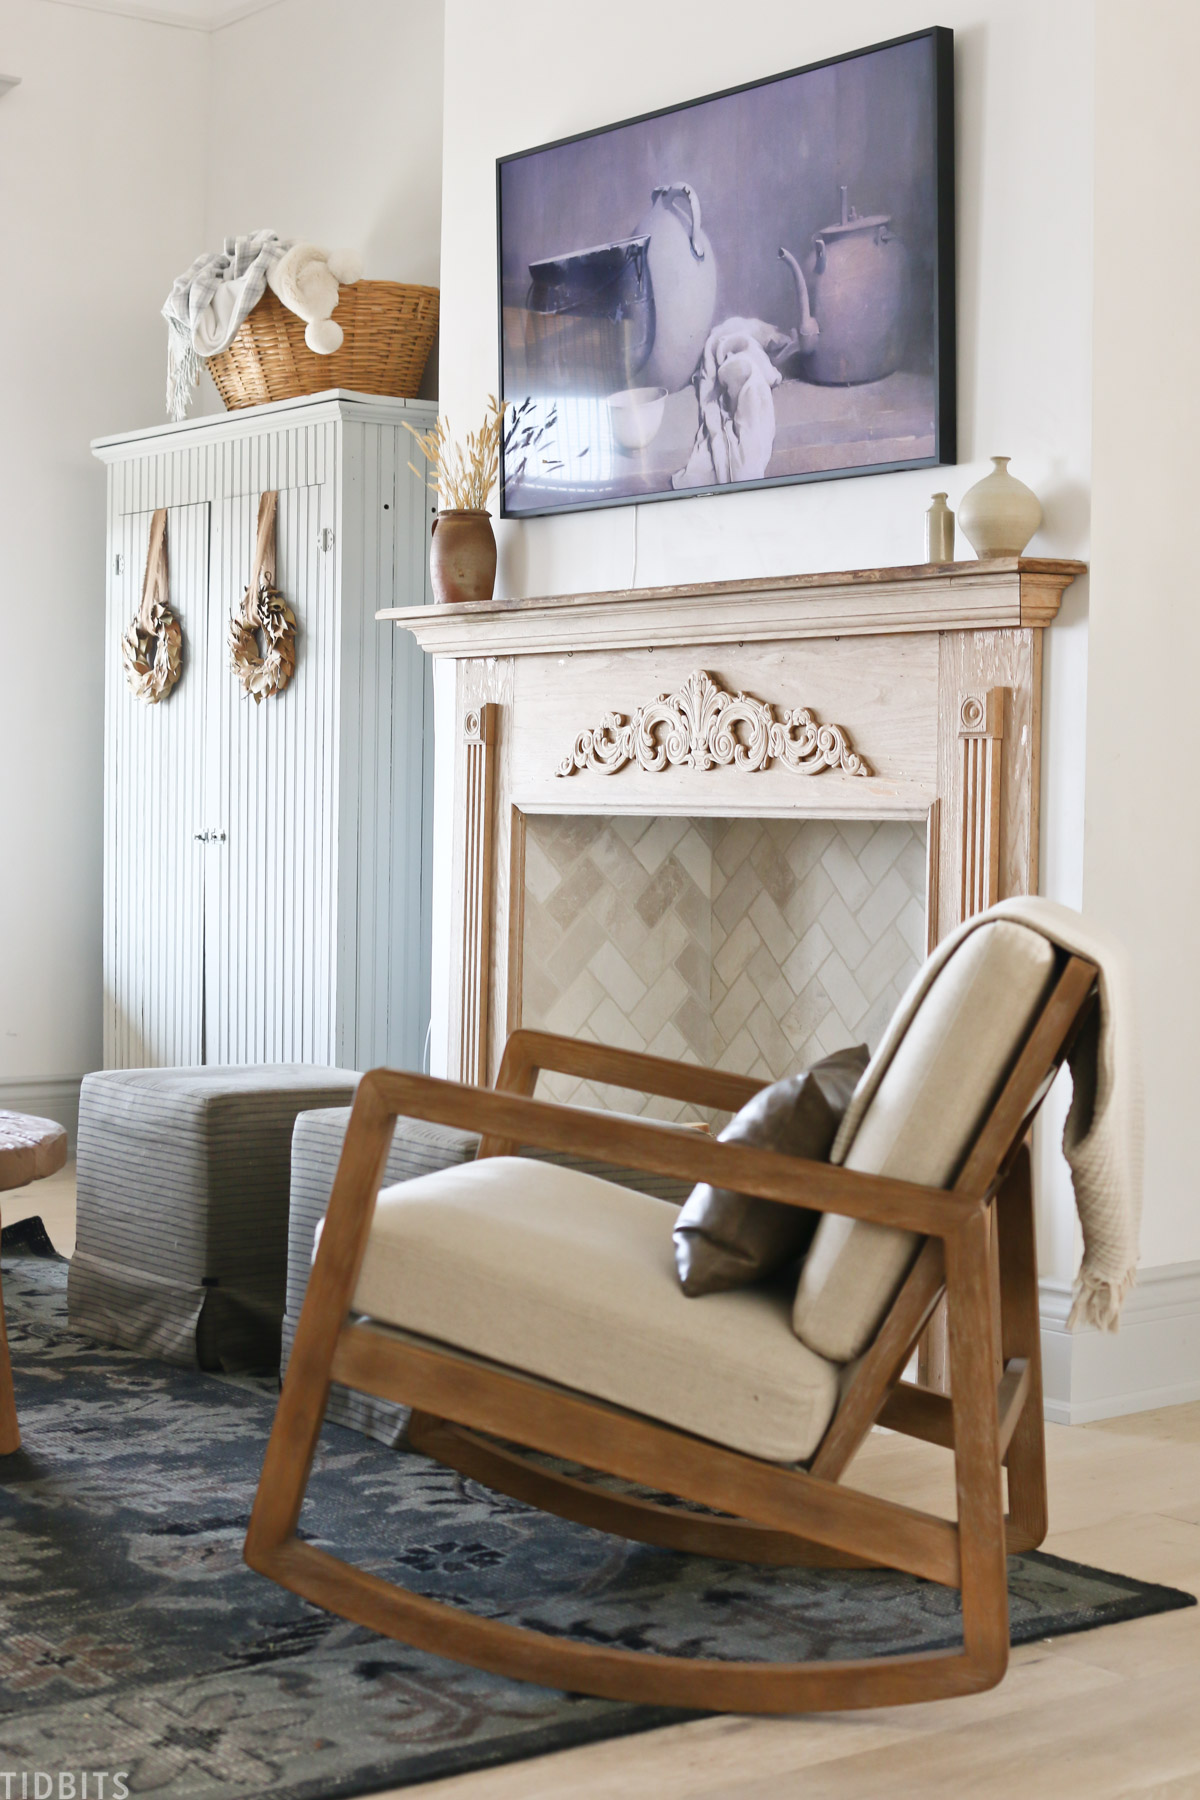 wooden rocking chair in front of faux fireplace with home decor items placed throughout living room